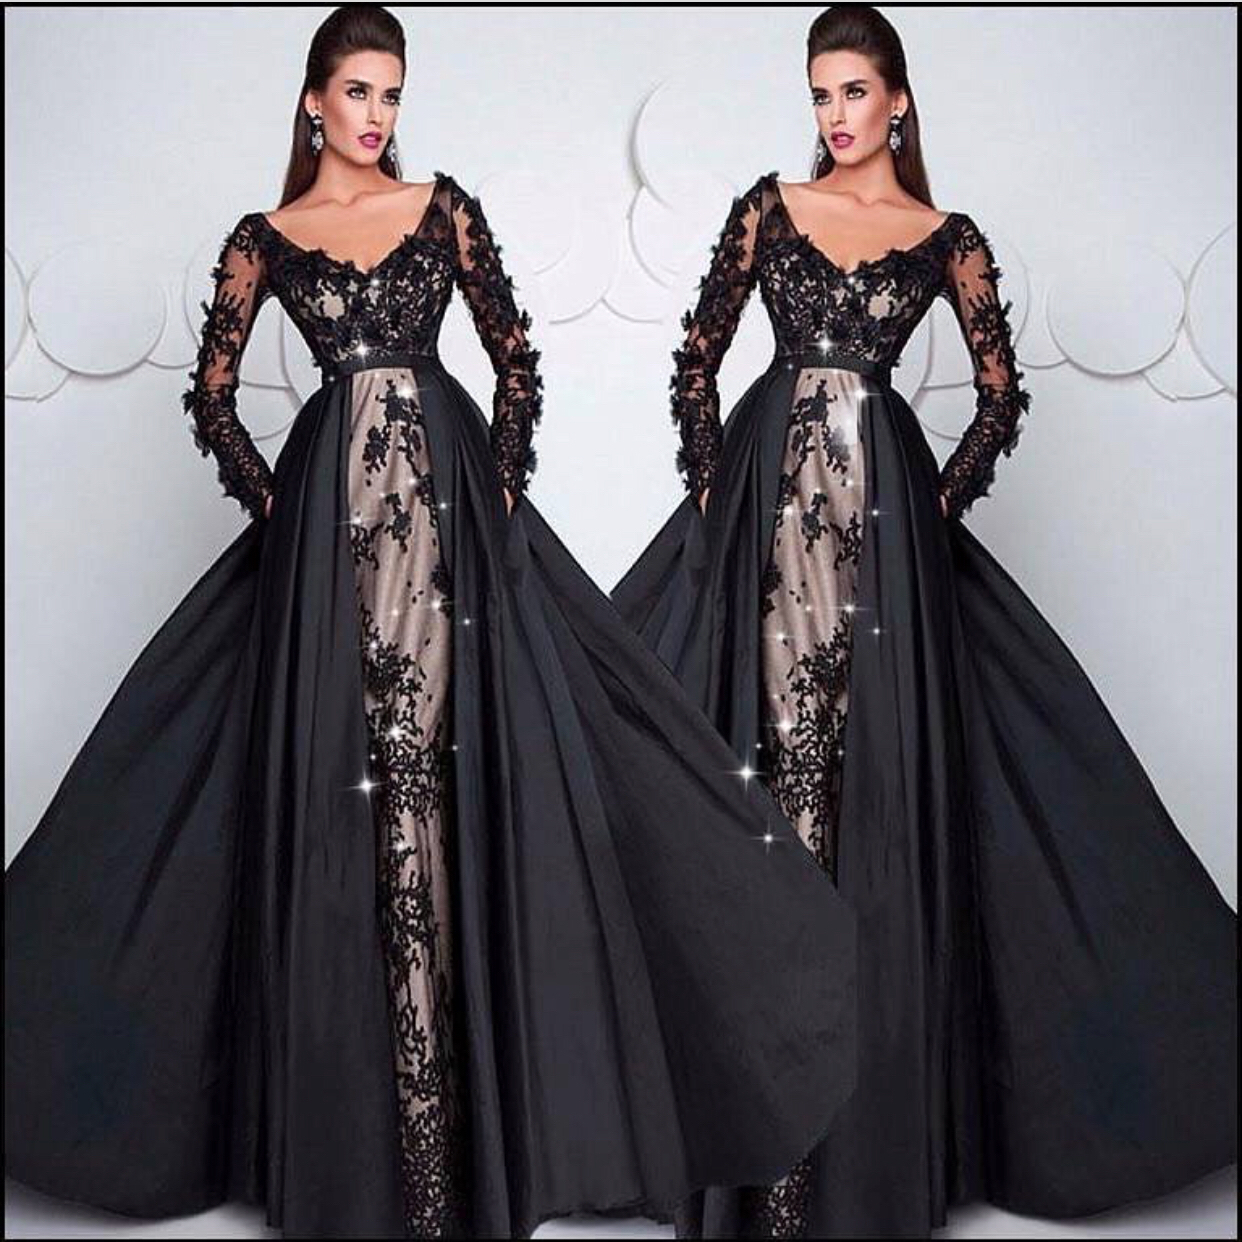 1fda9fa025a8 Black Evening Dress, Detachable Skirt Evening Dress, Evening Dresses 2019,  Vestido De Festa, Lace Applique Evening Dress, Long Sleeve Evening Dress,  Women ...